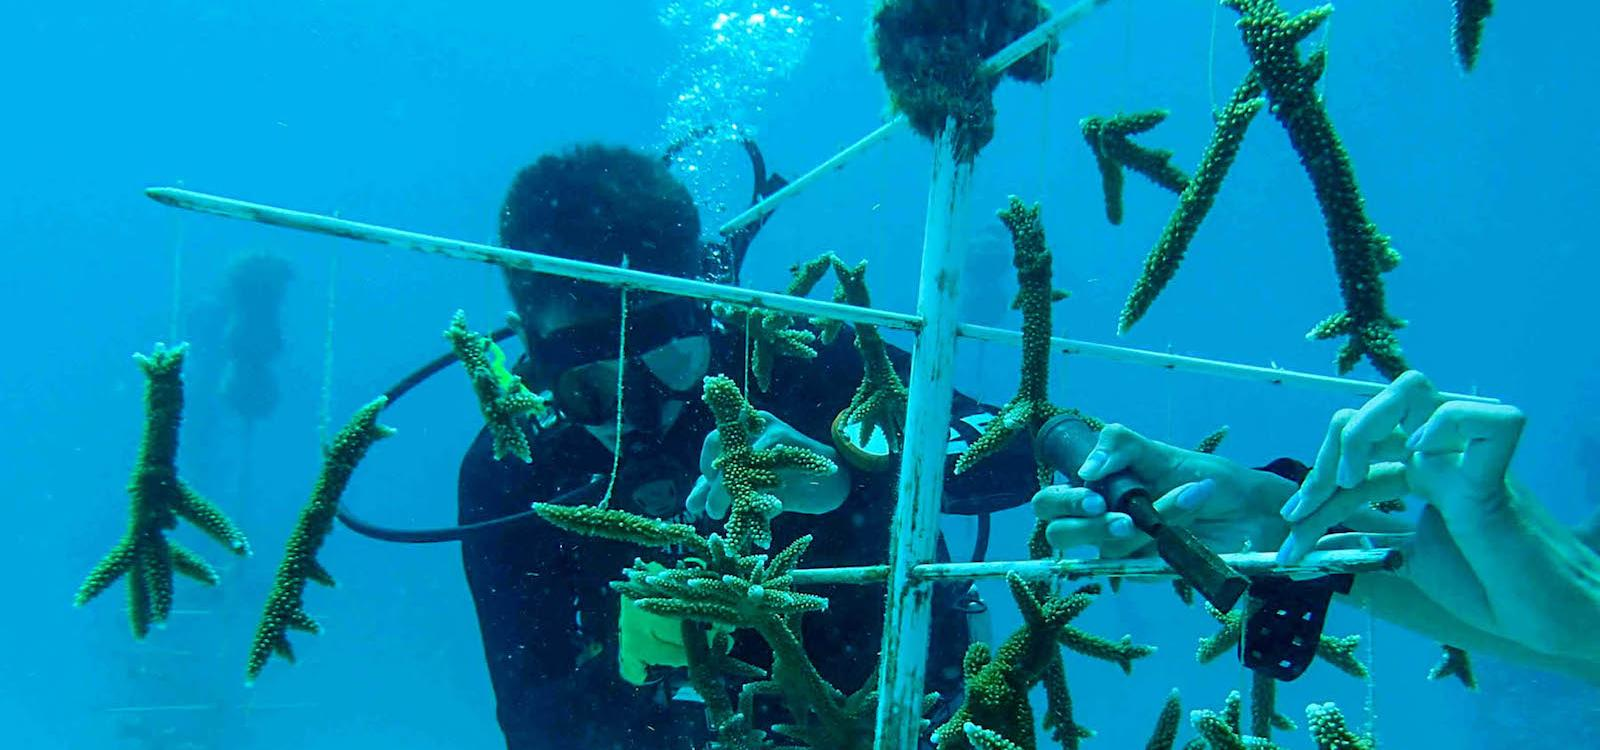 working to propagate corals